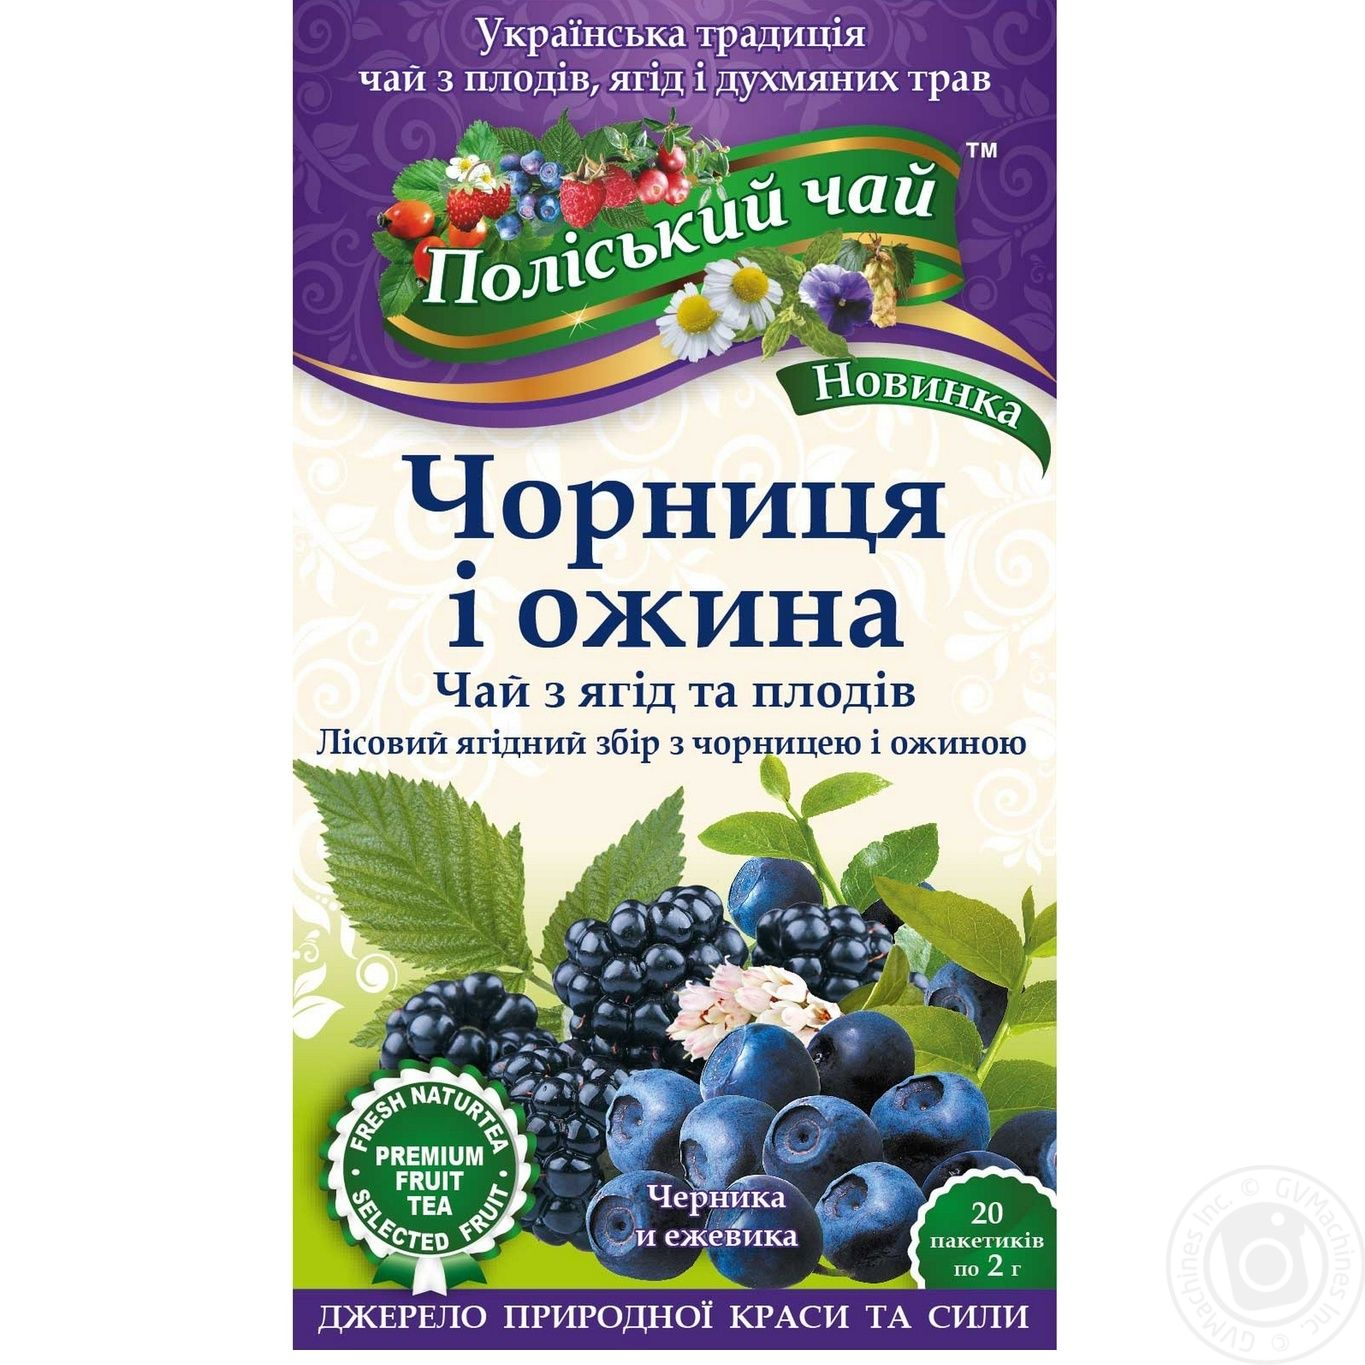 Tea Polissia tea fruit with blueberries 40g Ukraine → Drinks → Tea